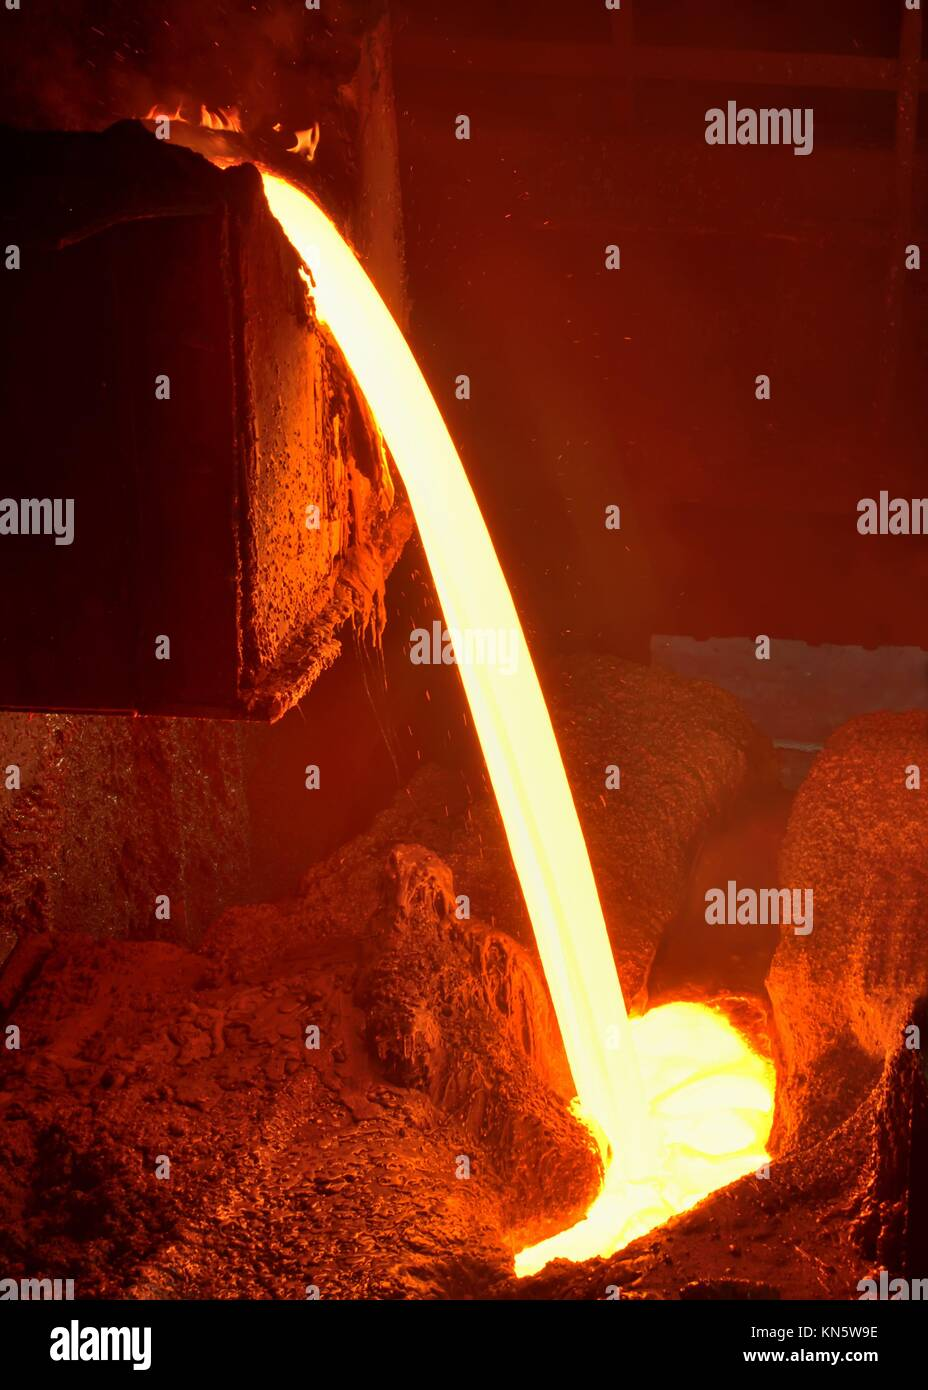 Pouring of liquid metal in open hearth workshop of the metallurgical plant. - Stock Image